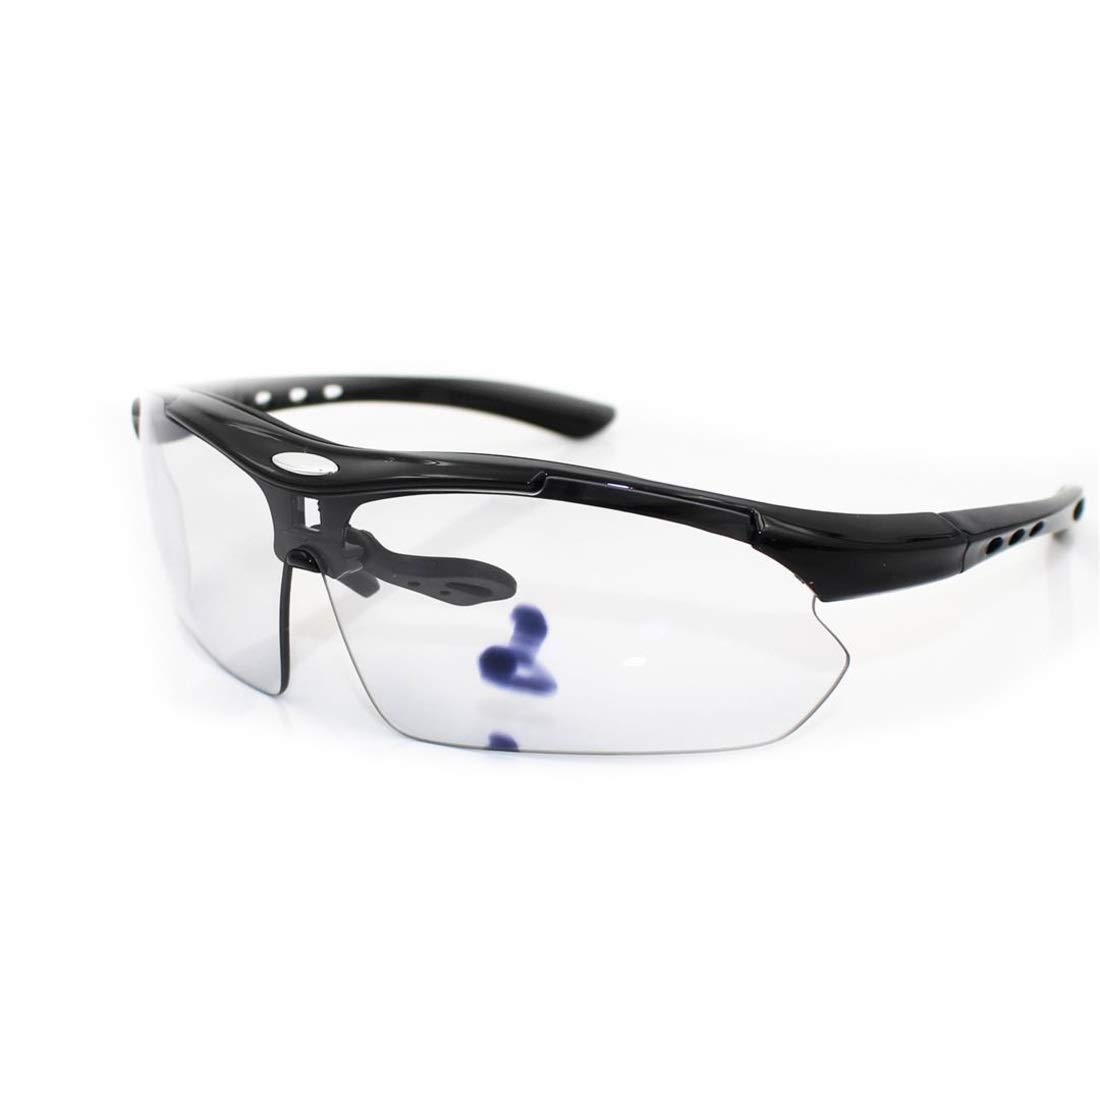 BAOYIT Riding Glasses Night Vision Fishing Mountaineering Running Sports Glasses Men and Women Color Changing Lens (Color : B) by BAOYIT